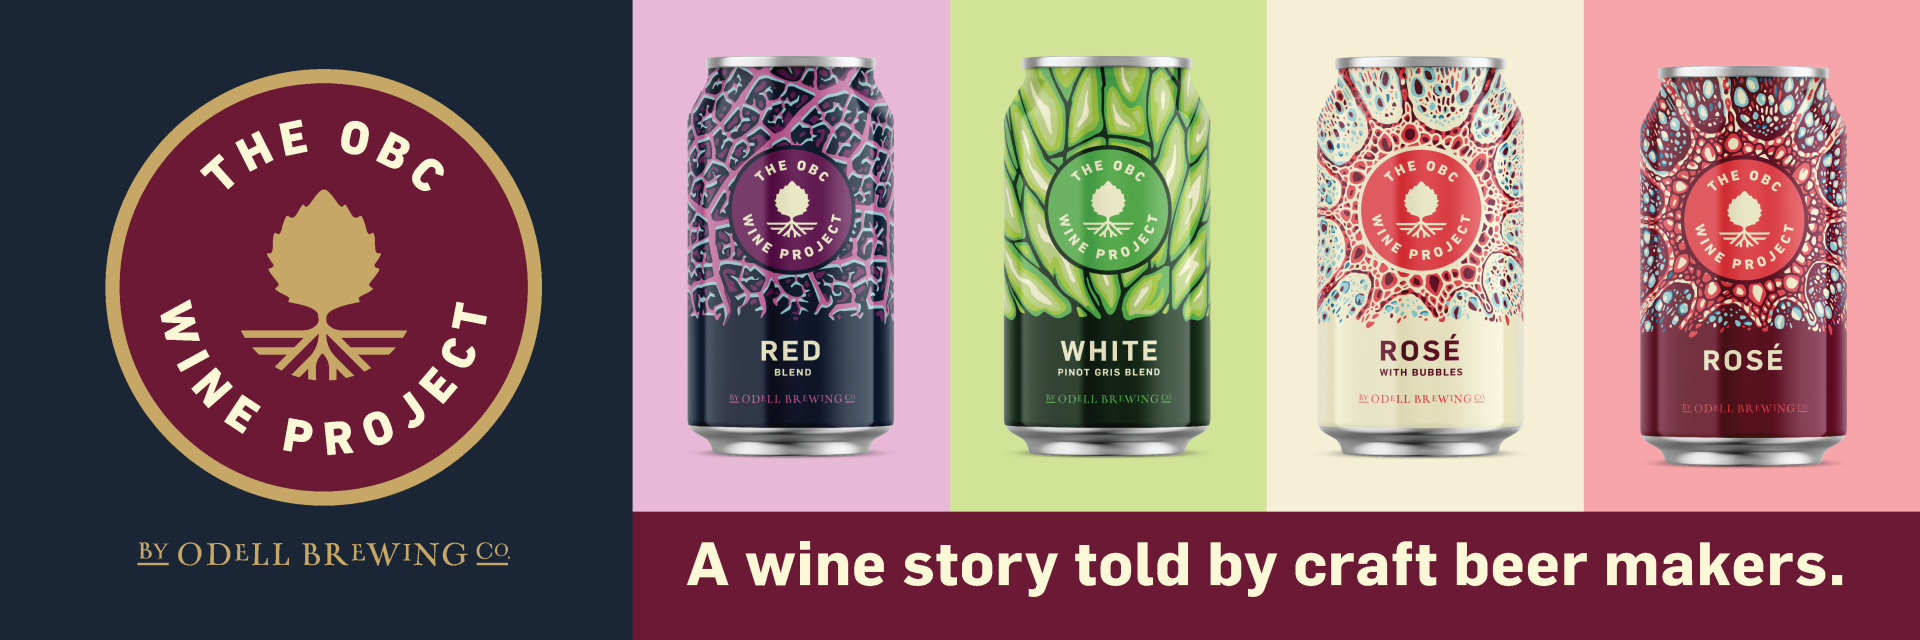 Odell Brewing Expands into Winemaking